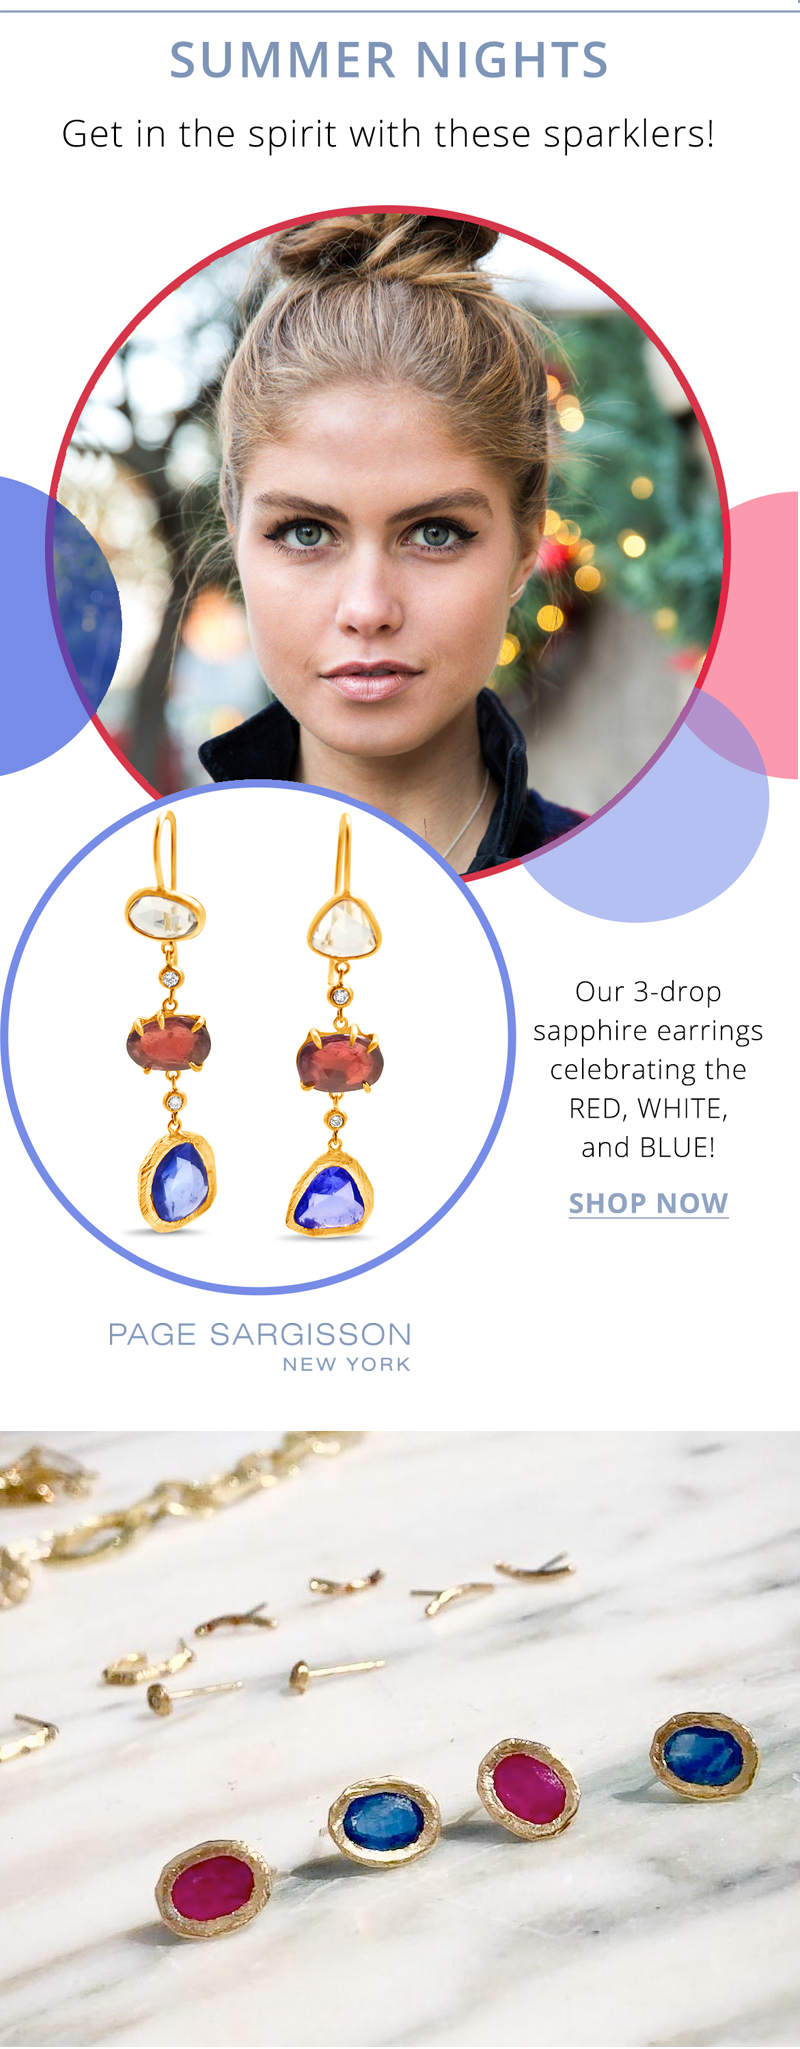 page sargisson july summer sparklers jewelry